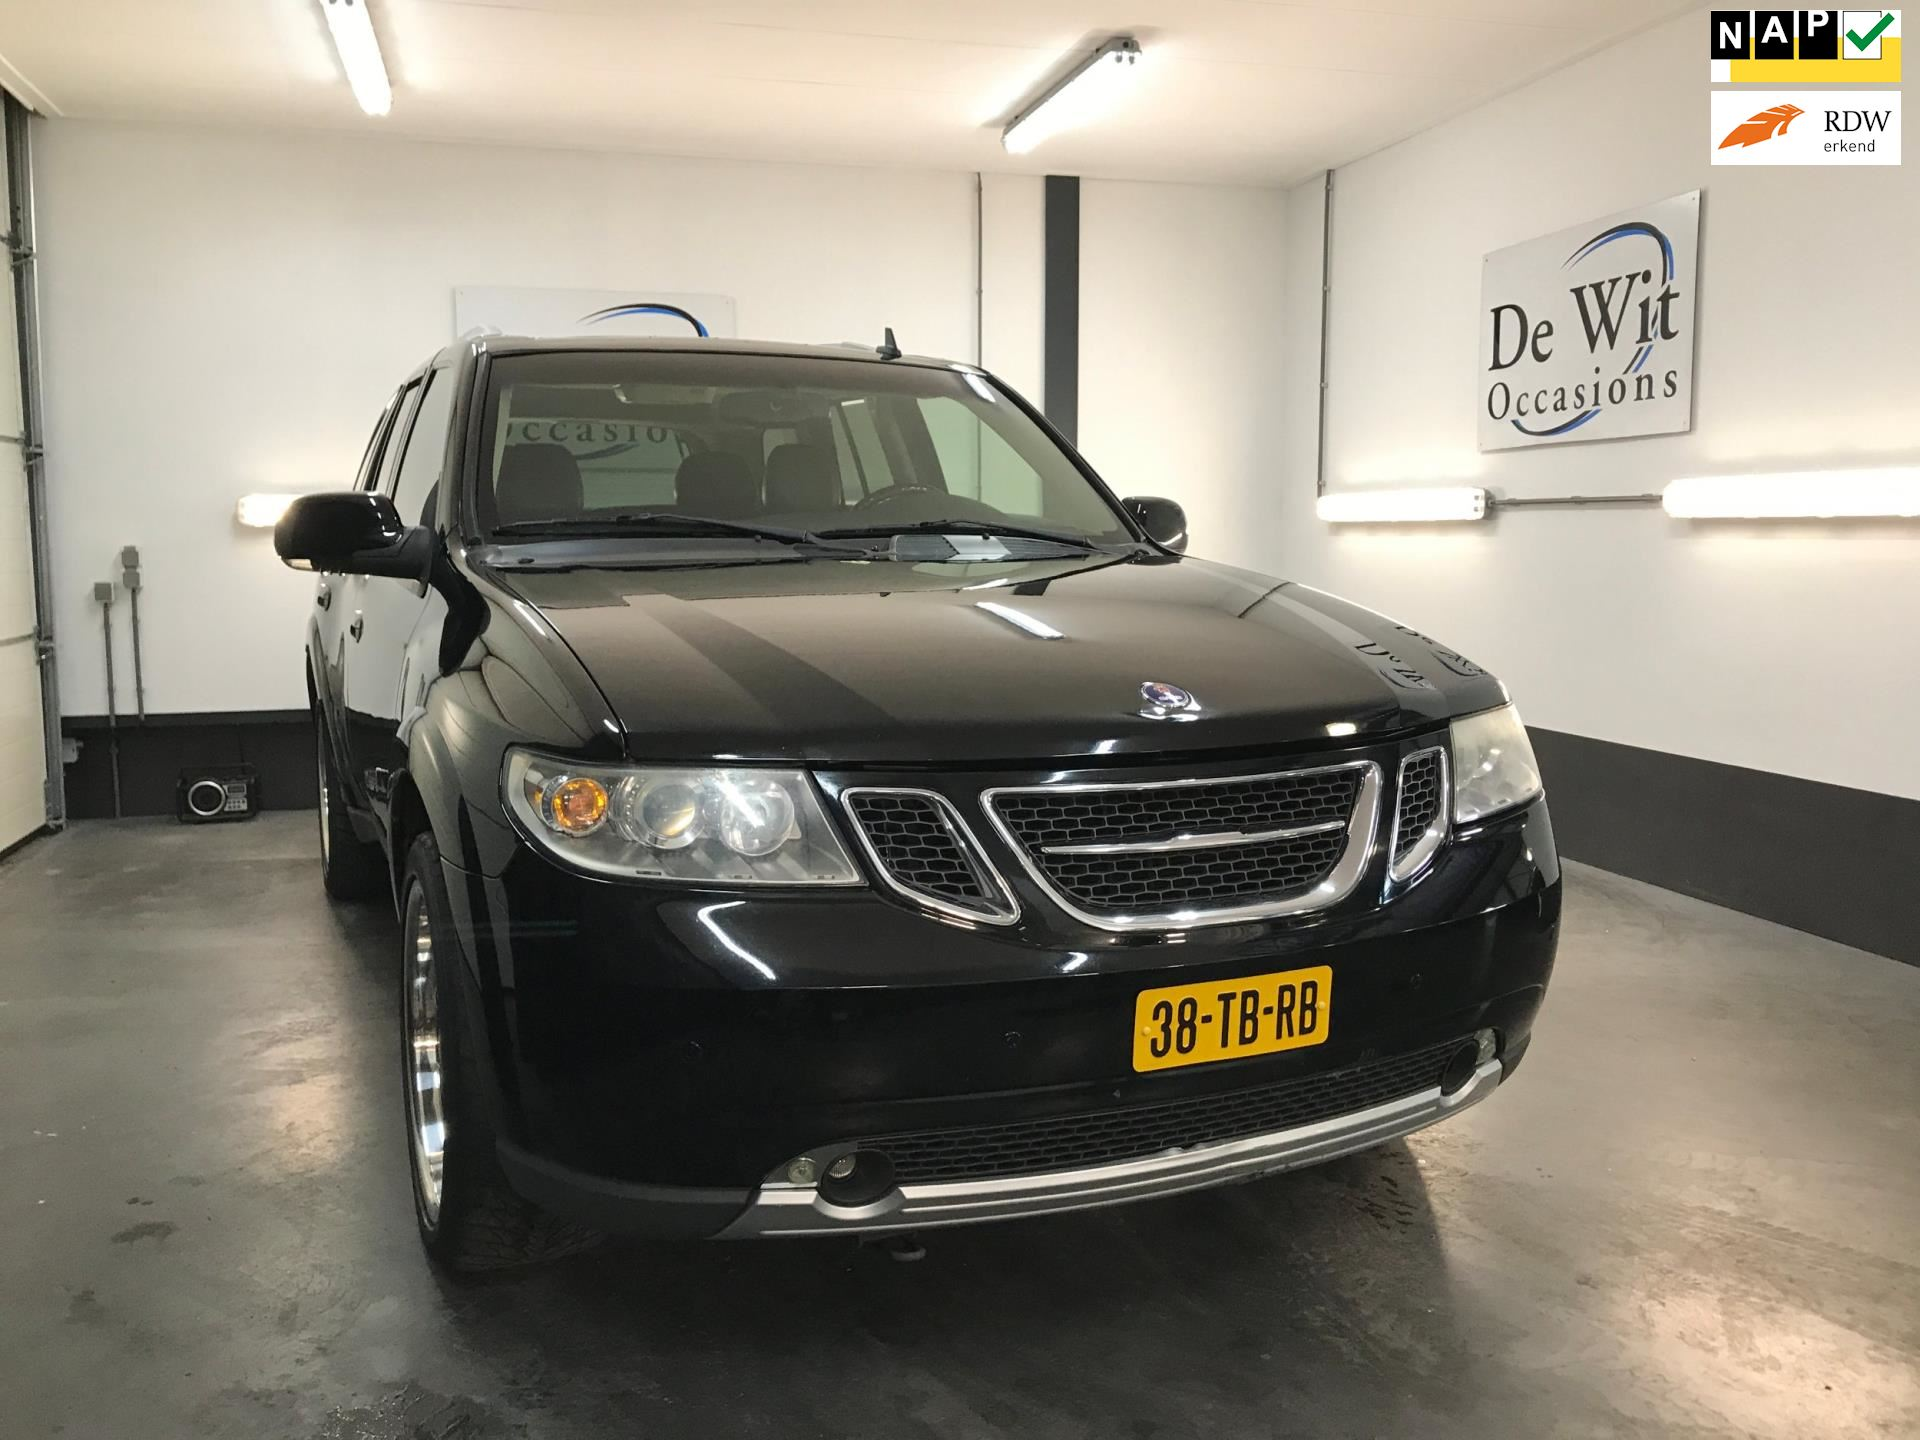 Saab 9-7X occasion - De Wit Occasions